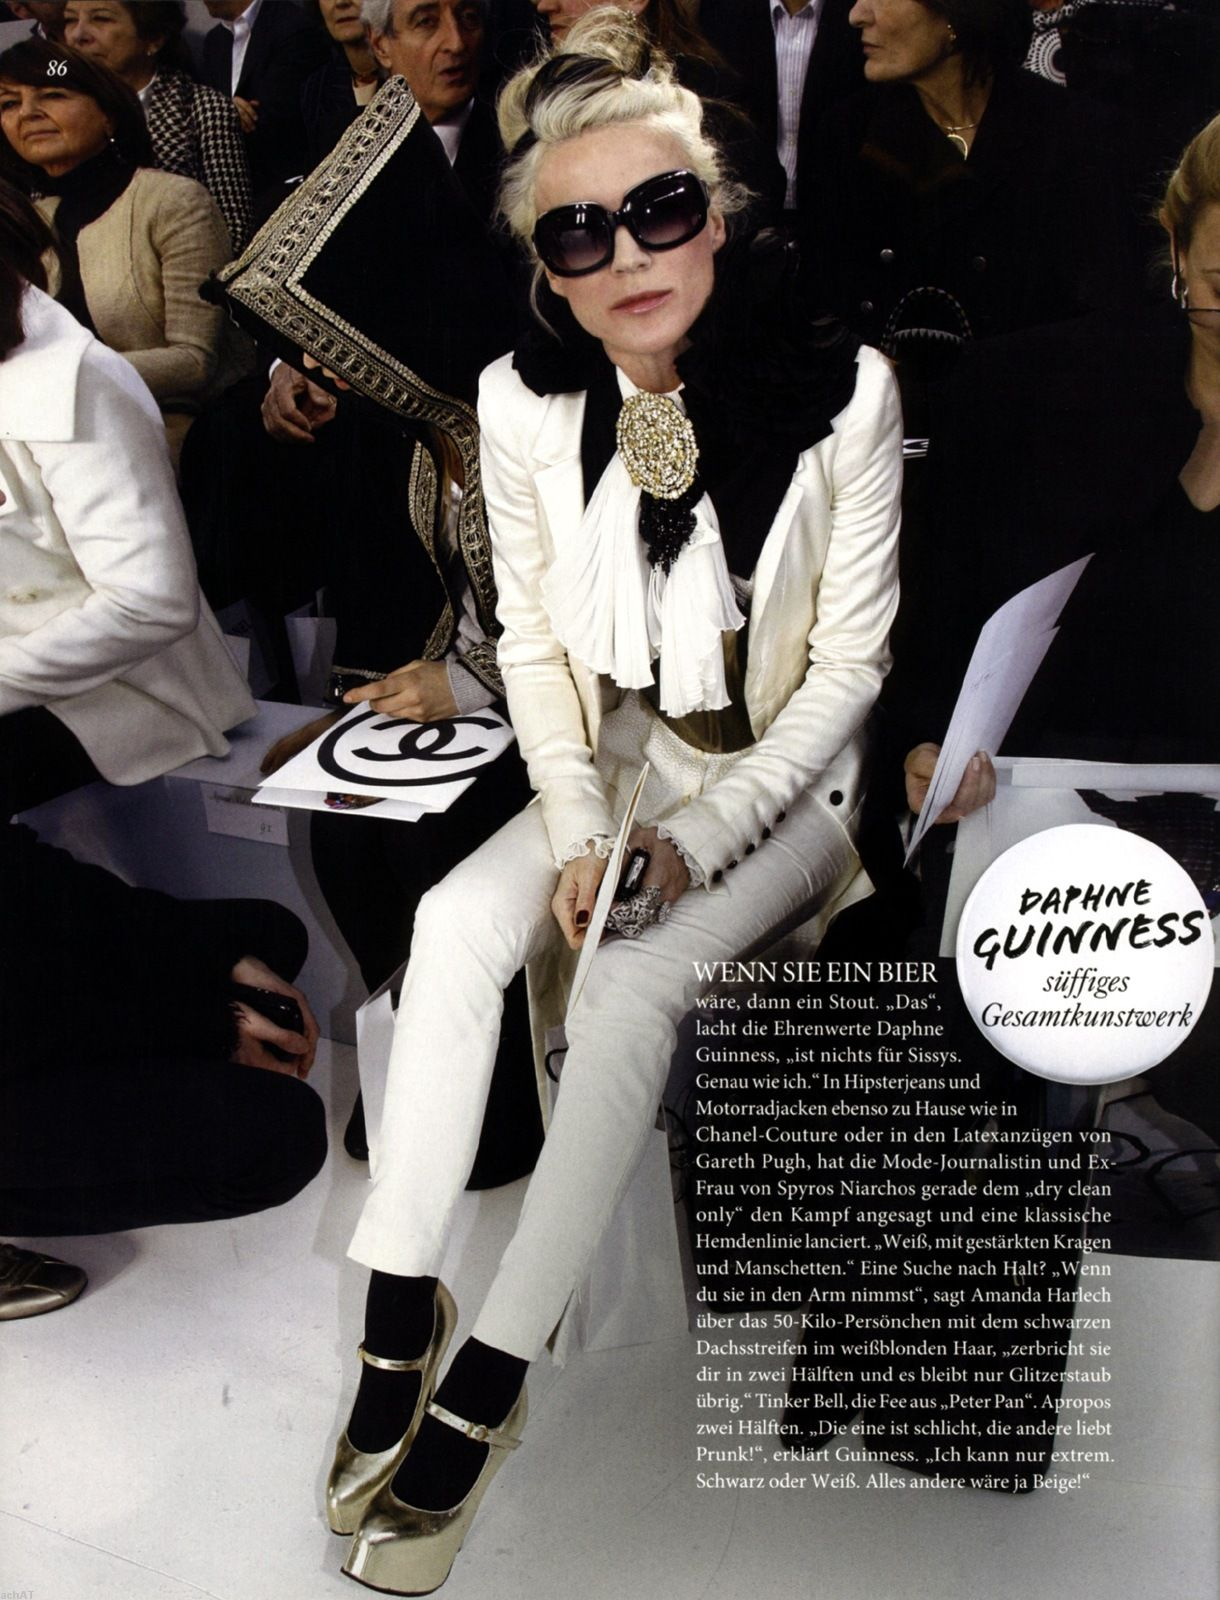 know that Daphne Guinness the best dressed bitch where ever she is.